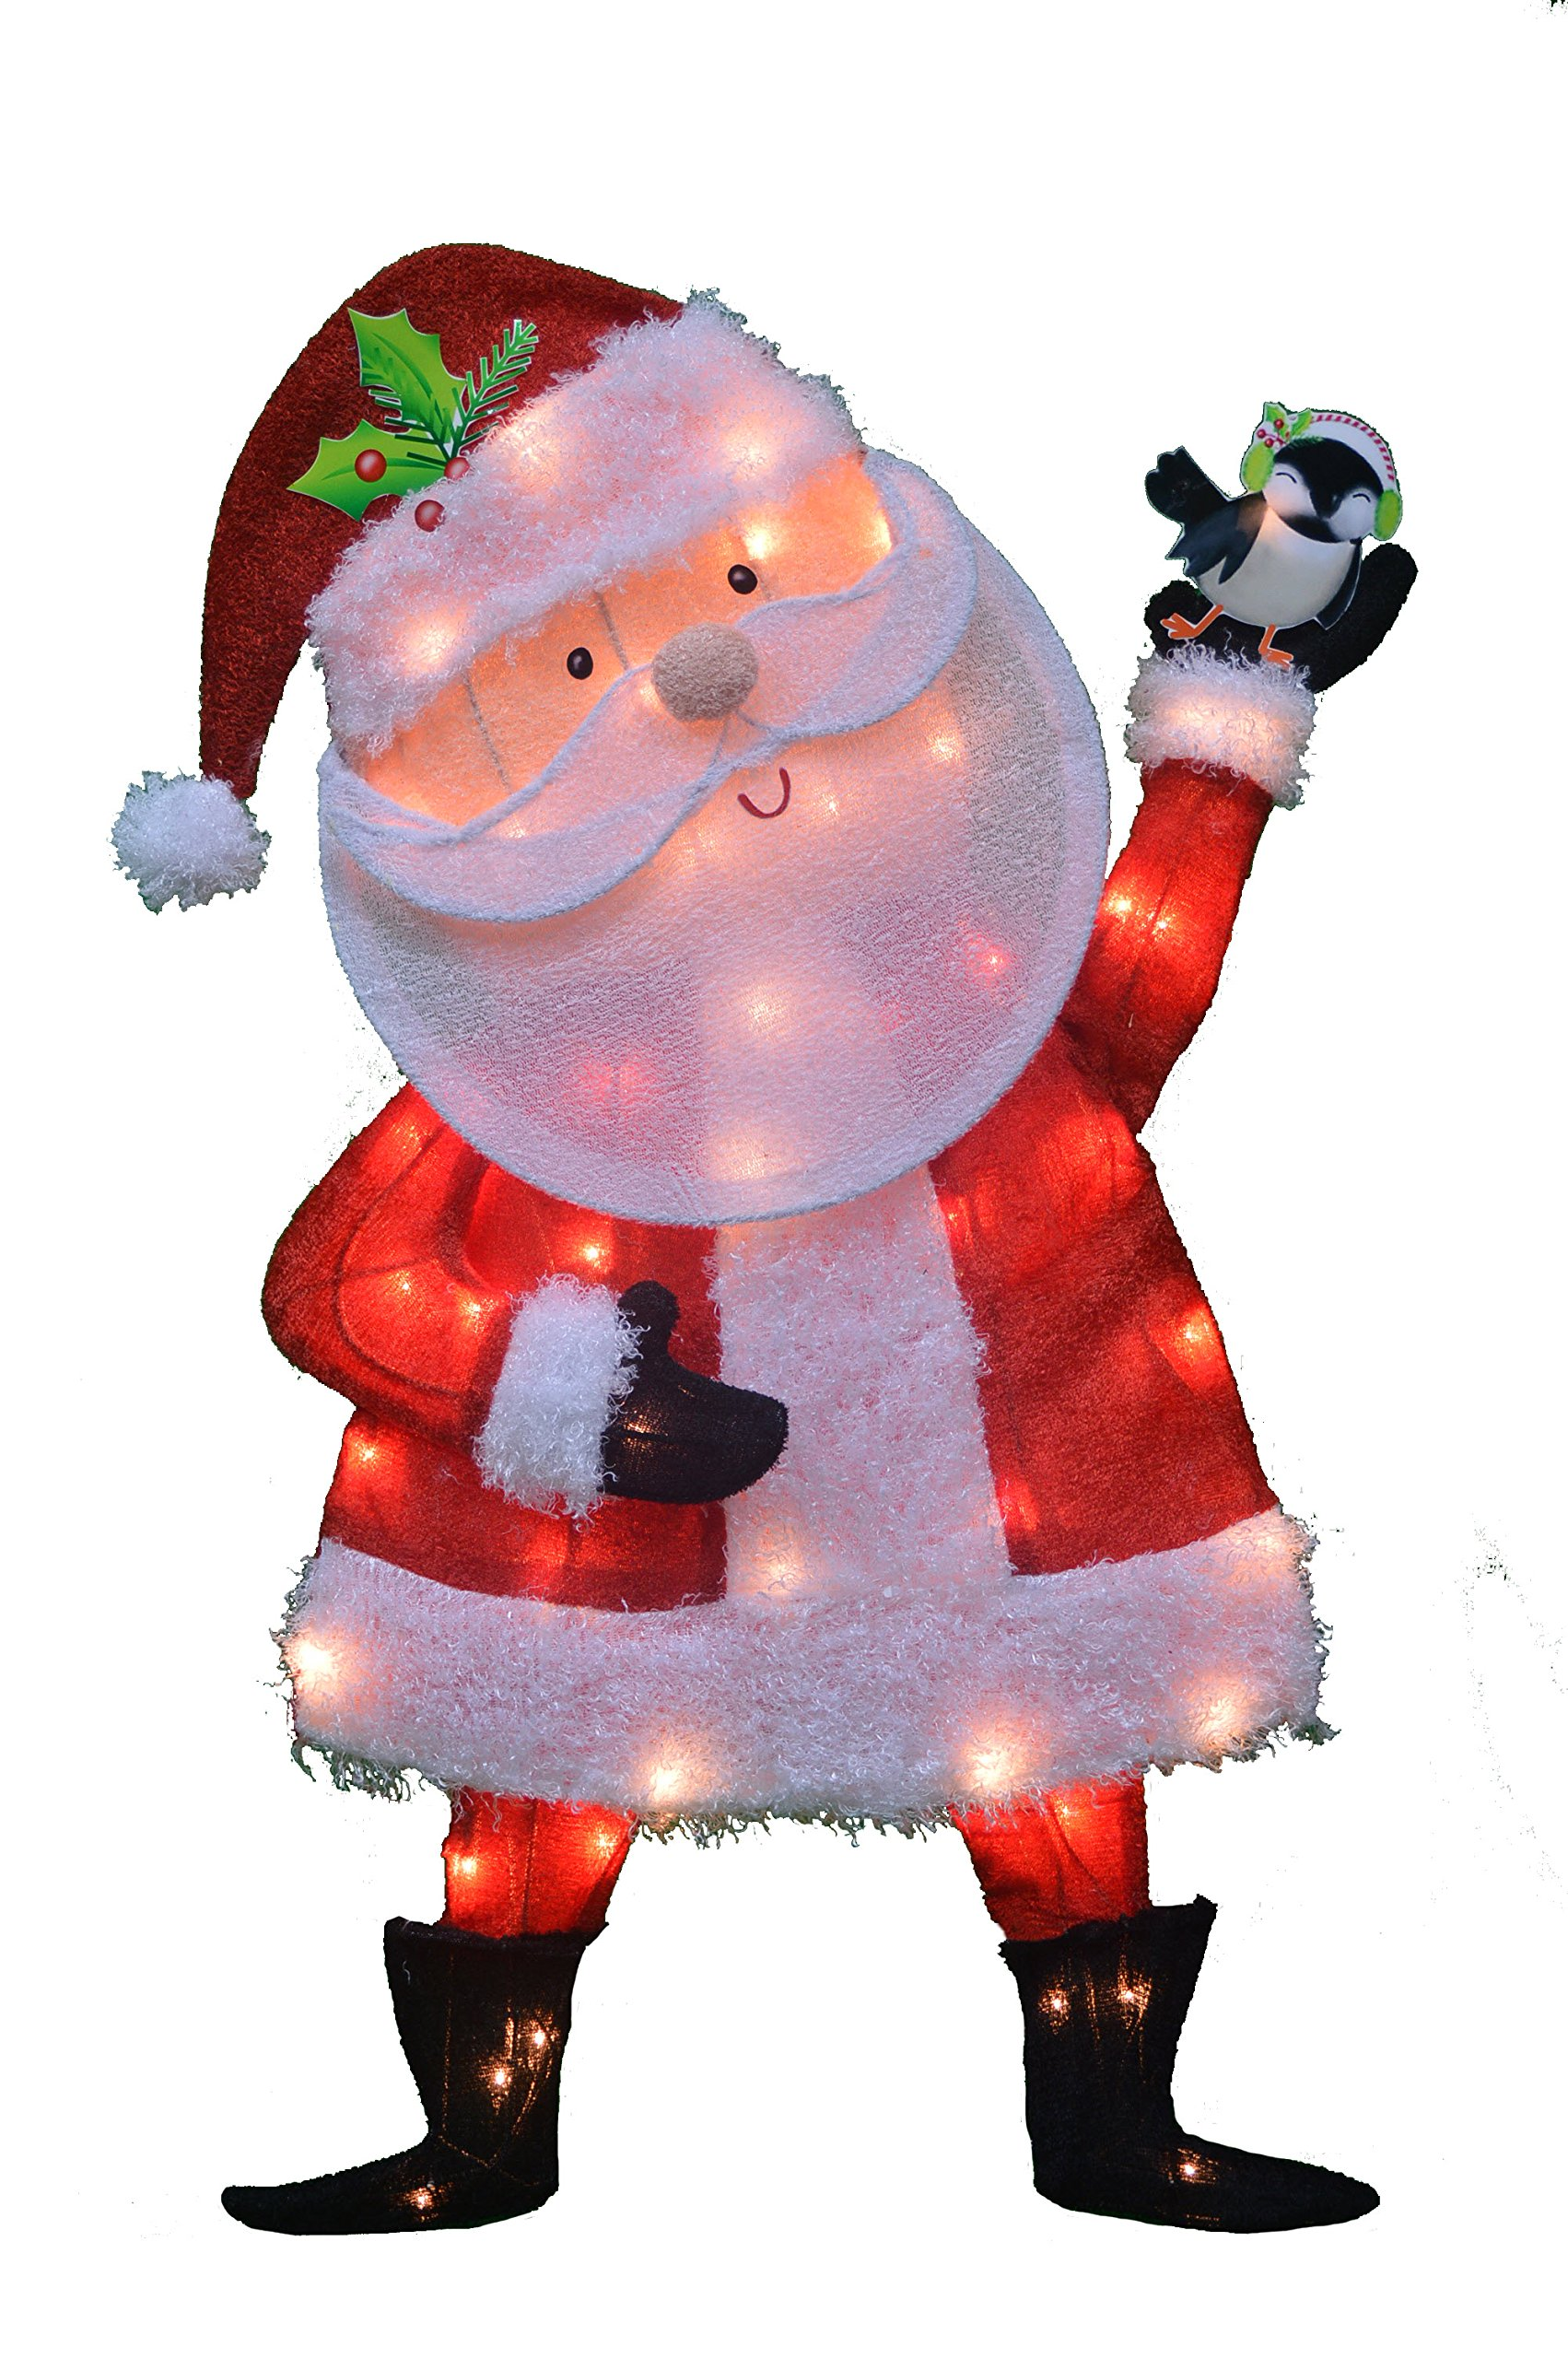 ProductWorks 32-Inch Pre-Lit Victoria Hutto Santa Claus Christmas Yard Decoration, 50 Lights